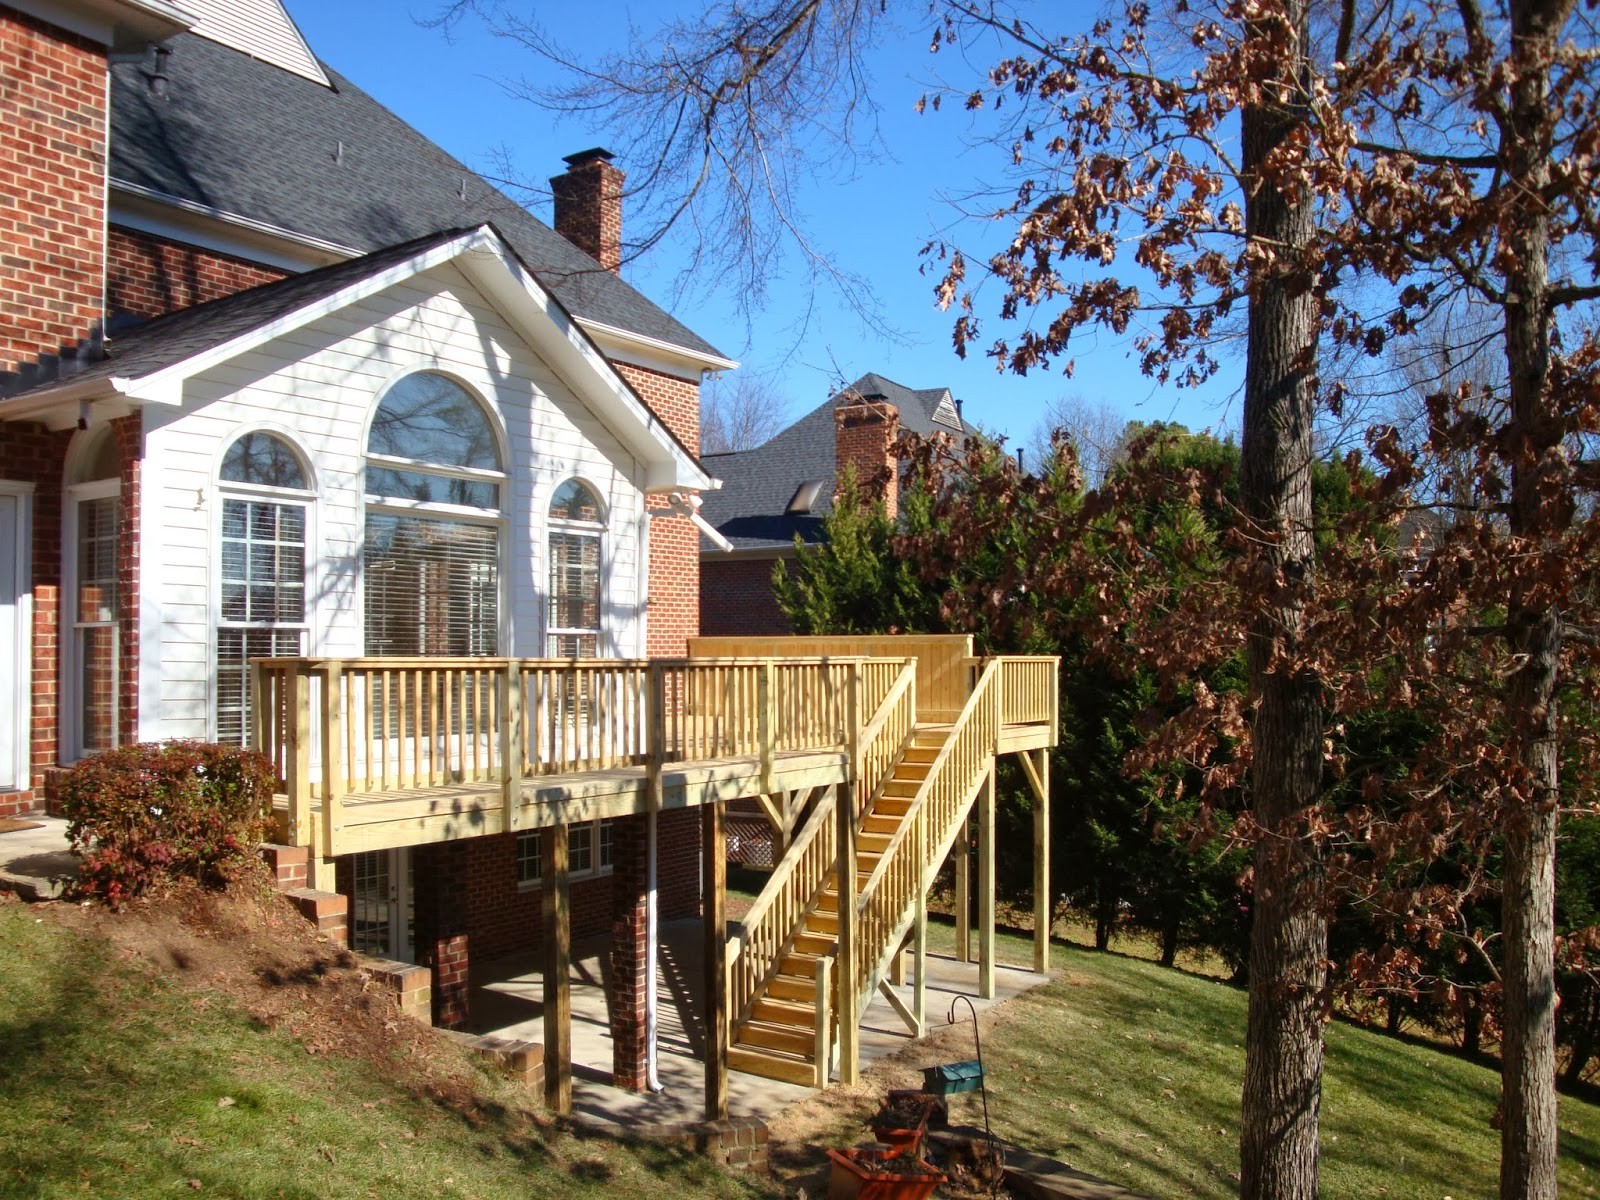 Deck Project by Southern Home Improvement / Porch-Life Charlotte, NC